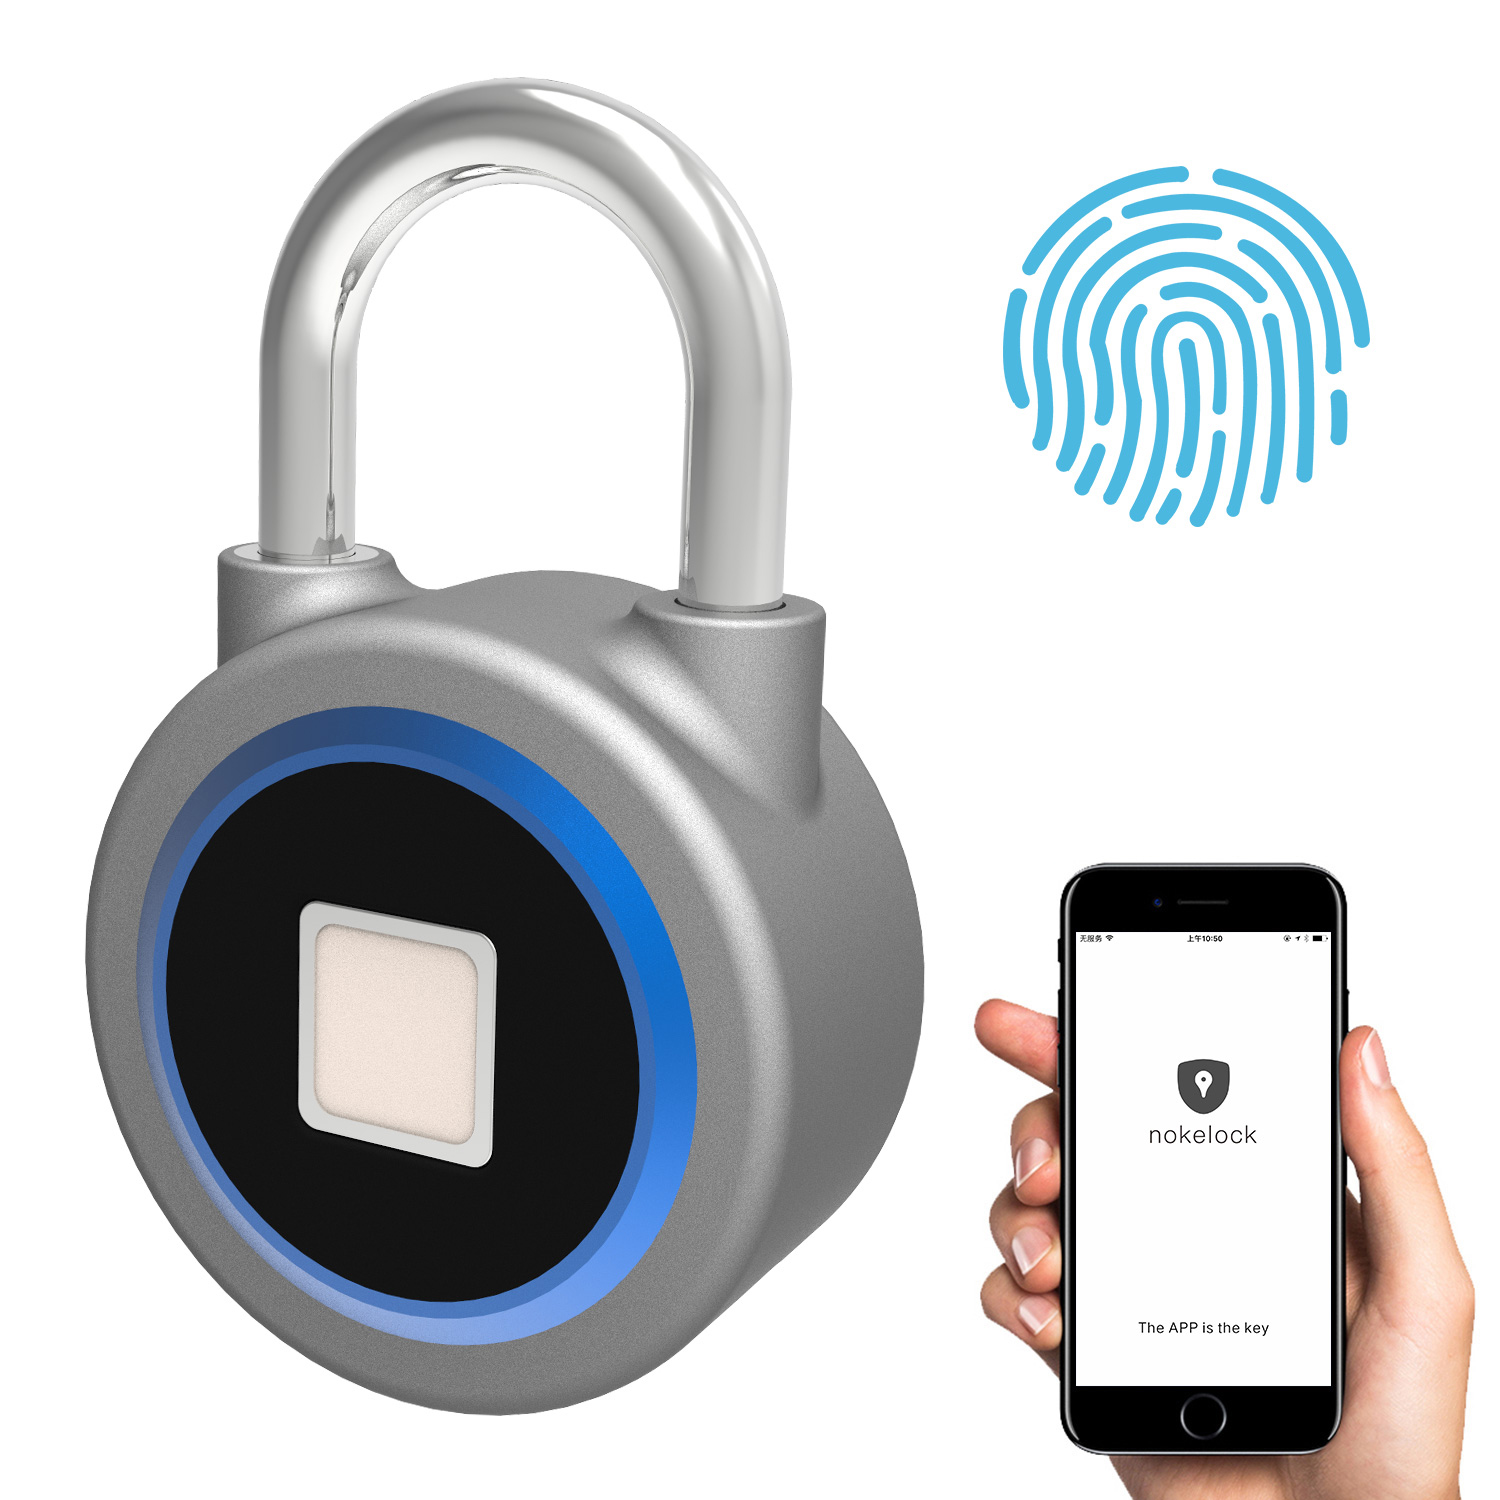 Creative Smart Padlock Electronic Lock Warehouse Door Security Door Lock Dormitory Cabinet Bedroom Bluetooth Fingerprint Padlock bluetooth fingerprint padlock outdoor door padlock smart fingerprint padlock door locks fingerprint electronic door lock